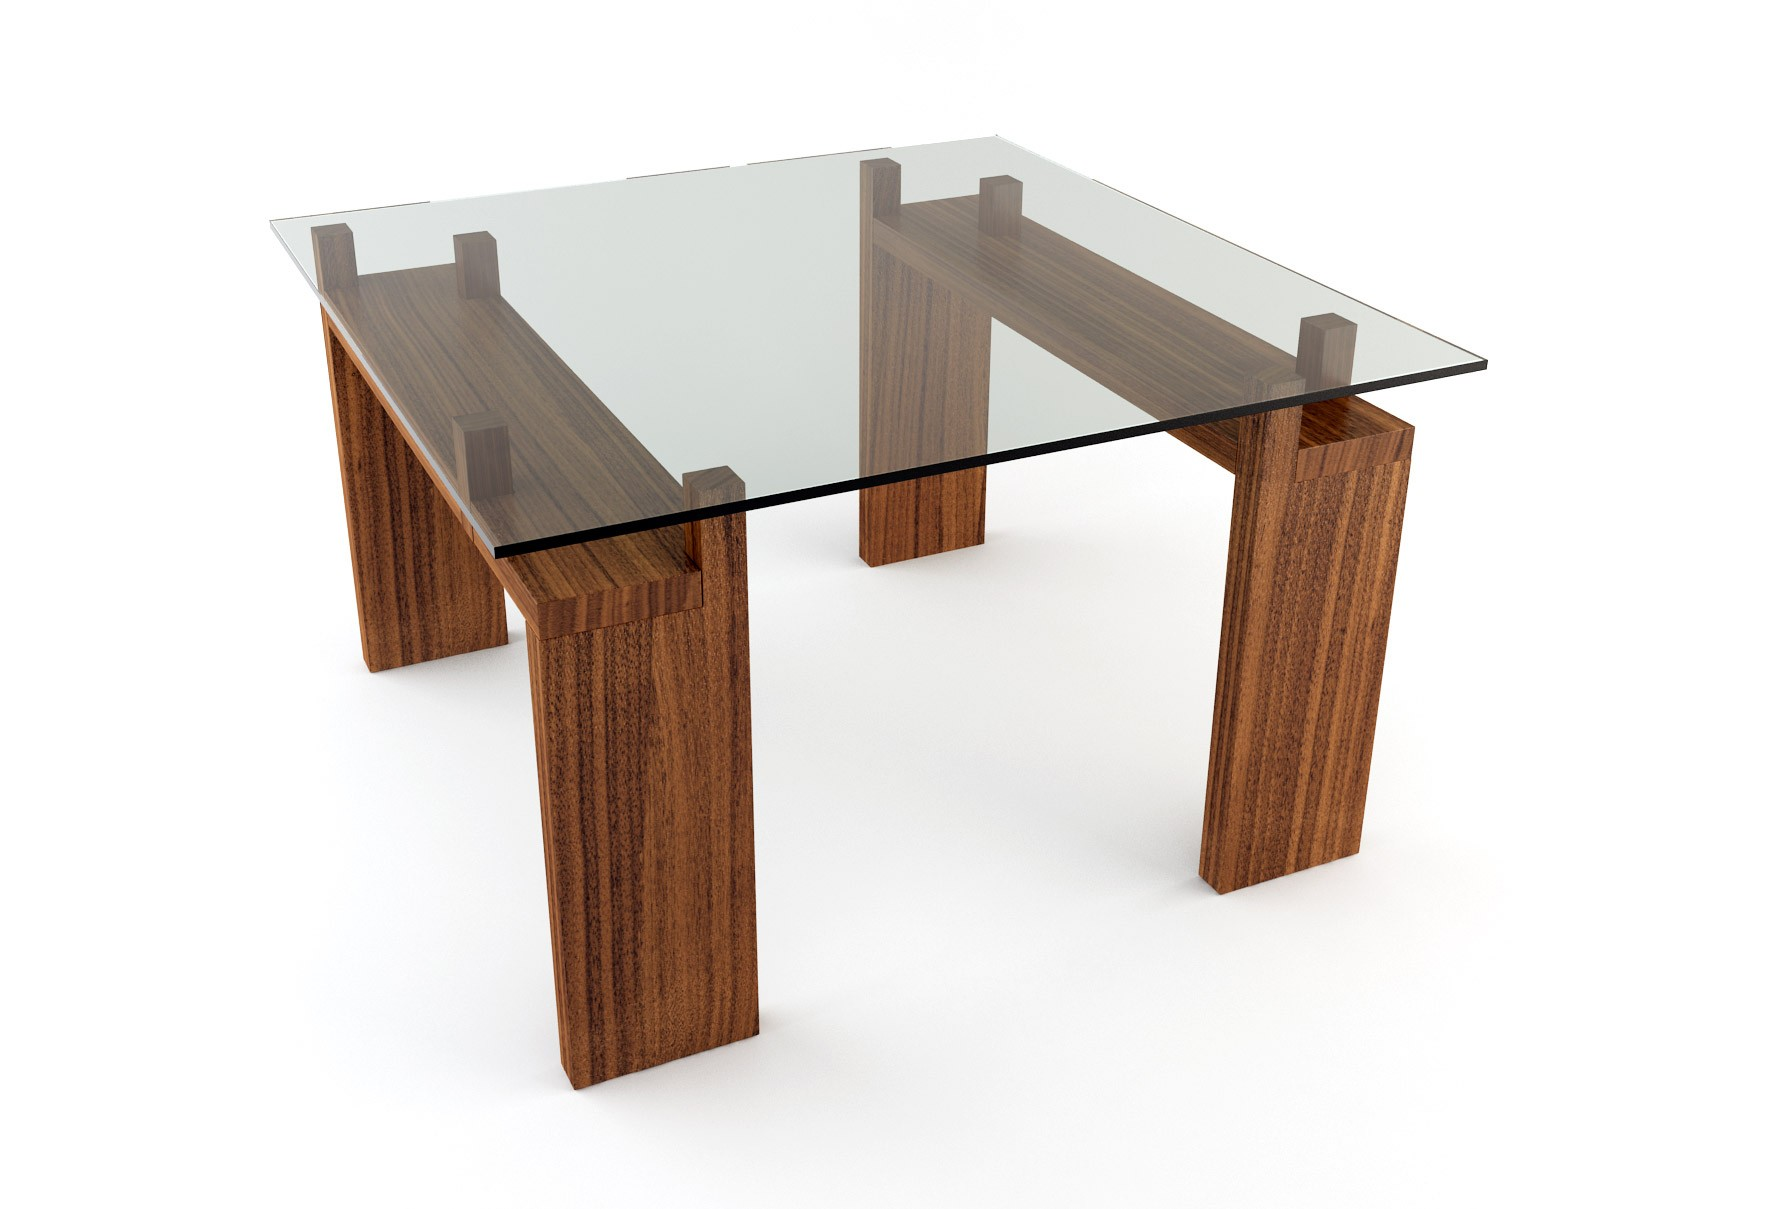 Square dining table for 4 homesfeed for Square dining table designs